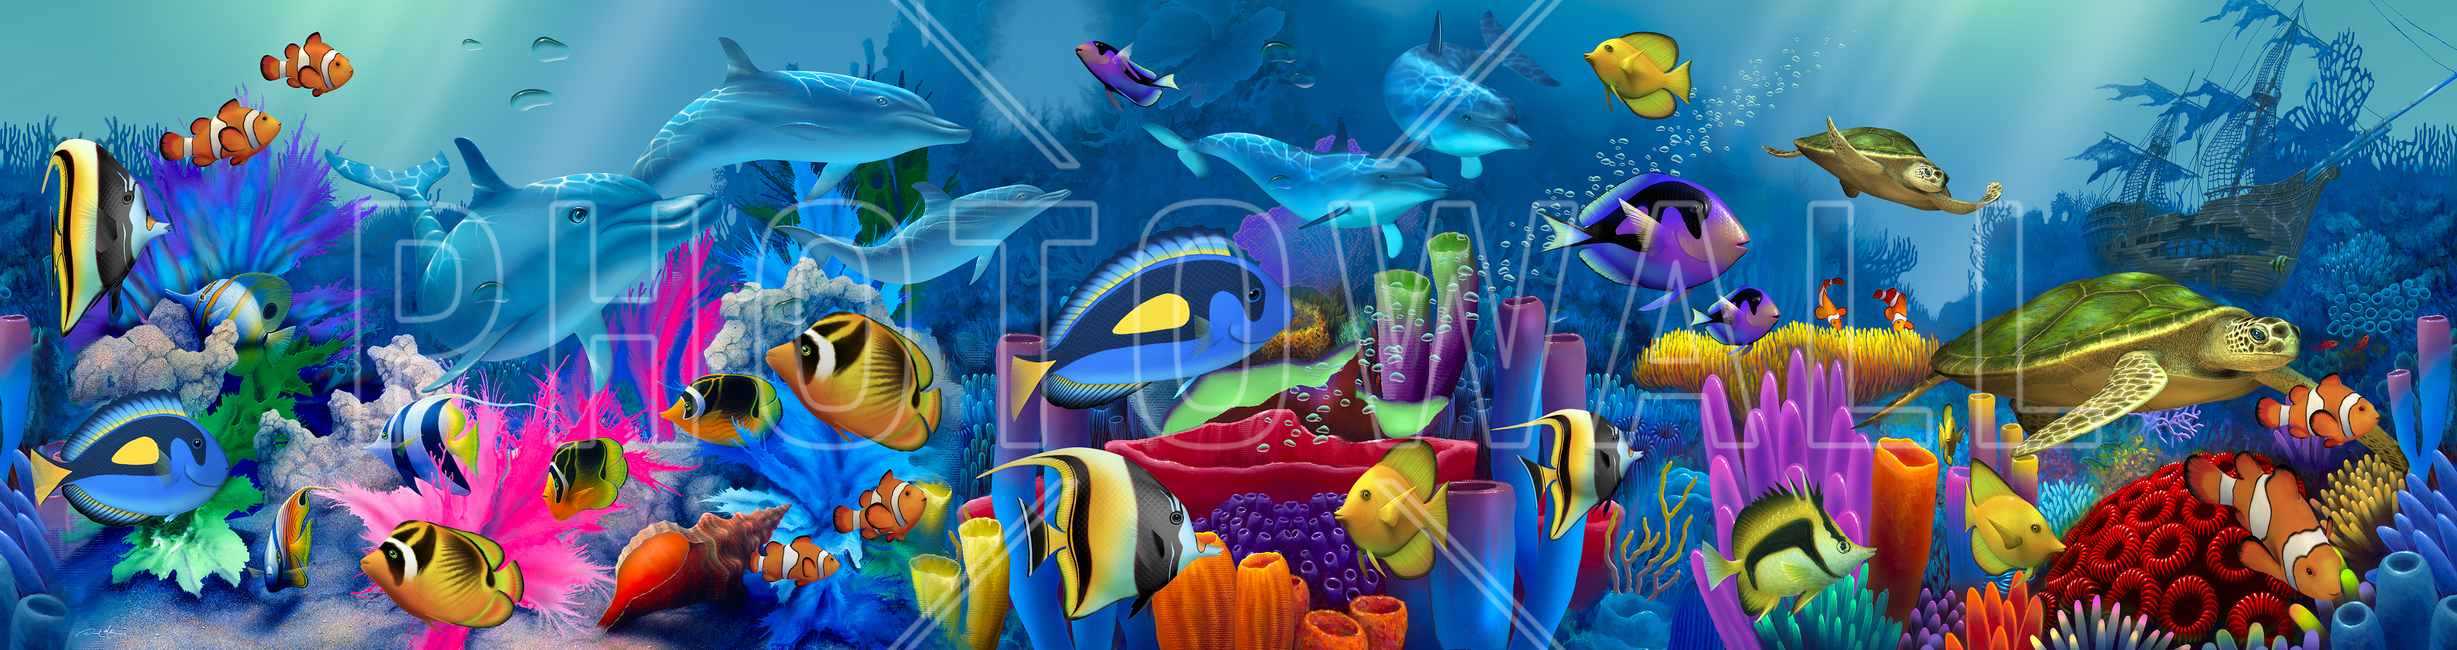 neptunes garden wall mural photo wallpaper photowall neptunes garden